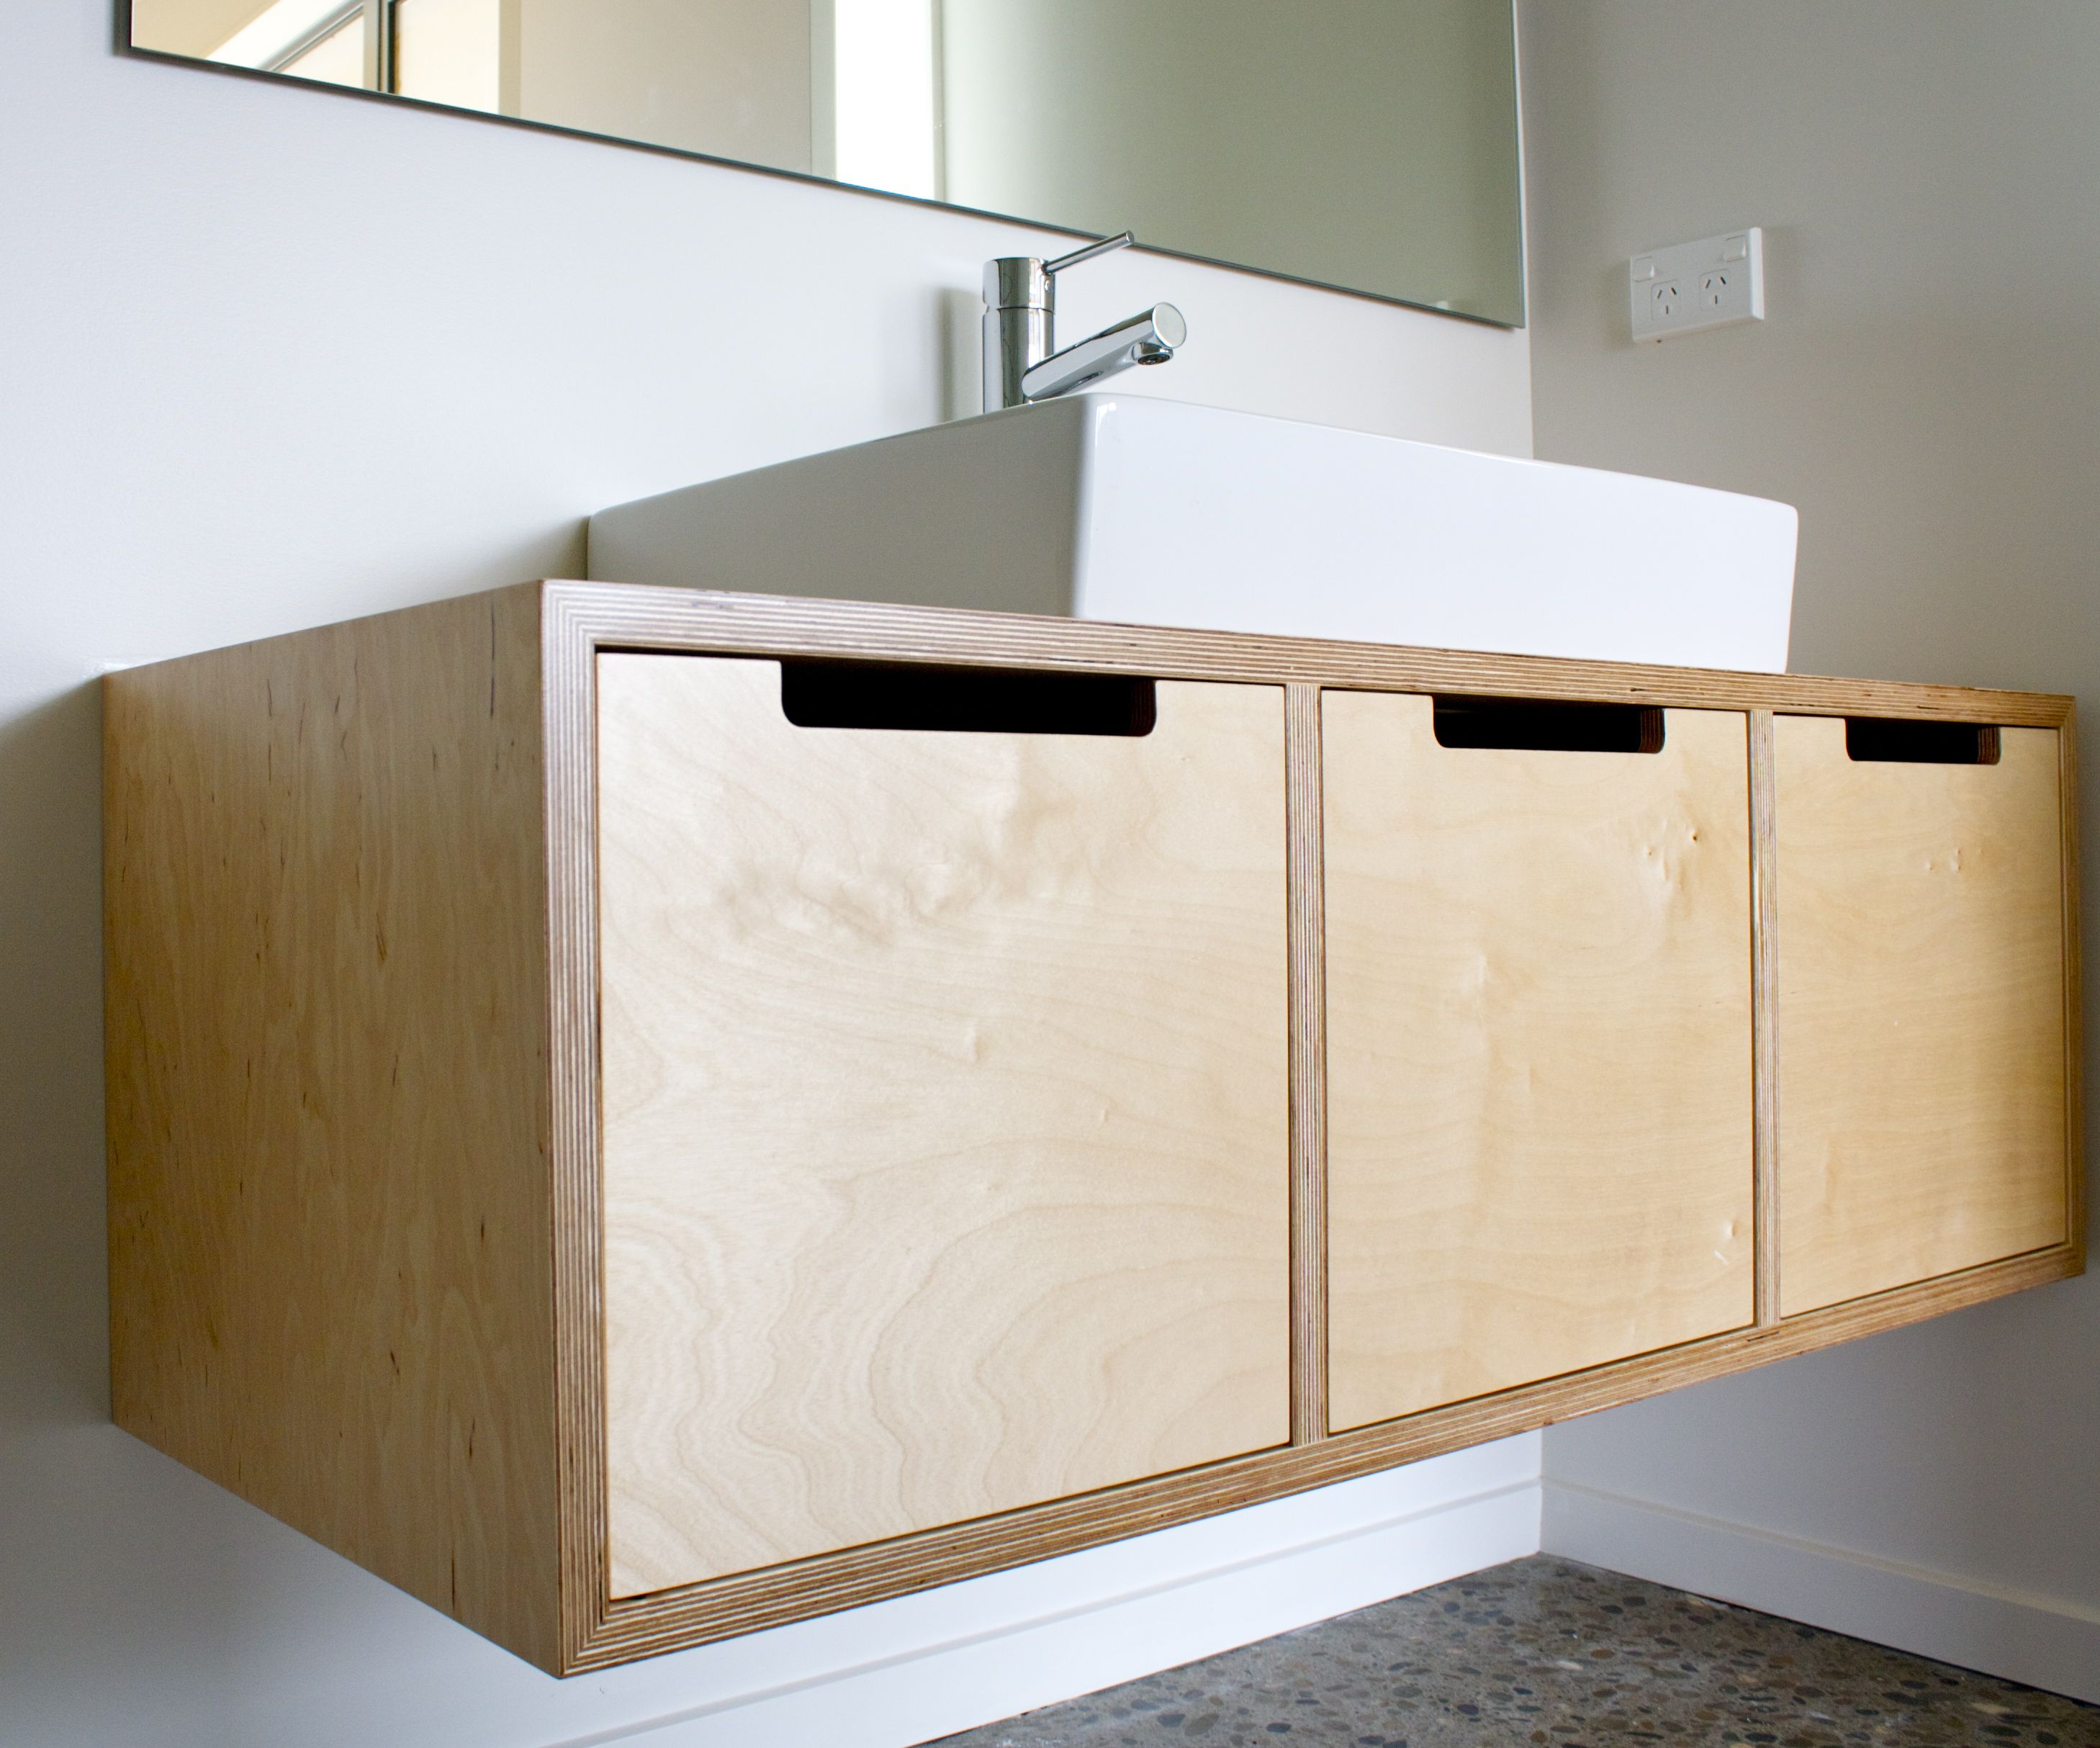 Plywood vanity make furniture my style pinterest for Plywood wall sheathing